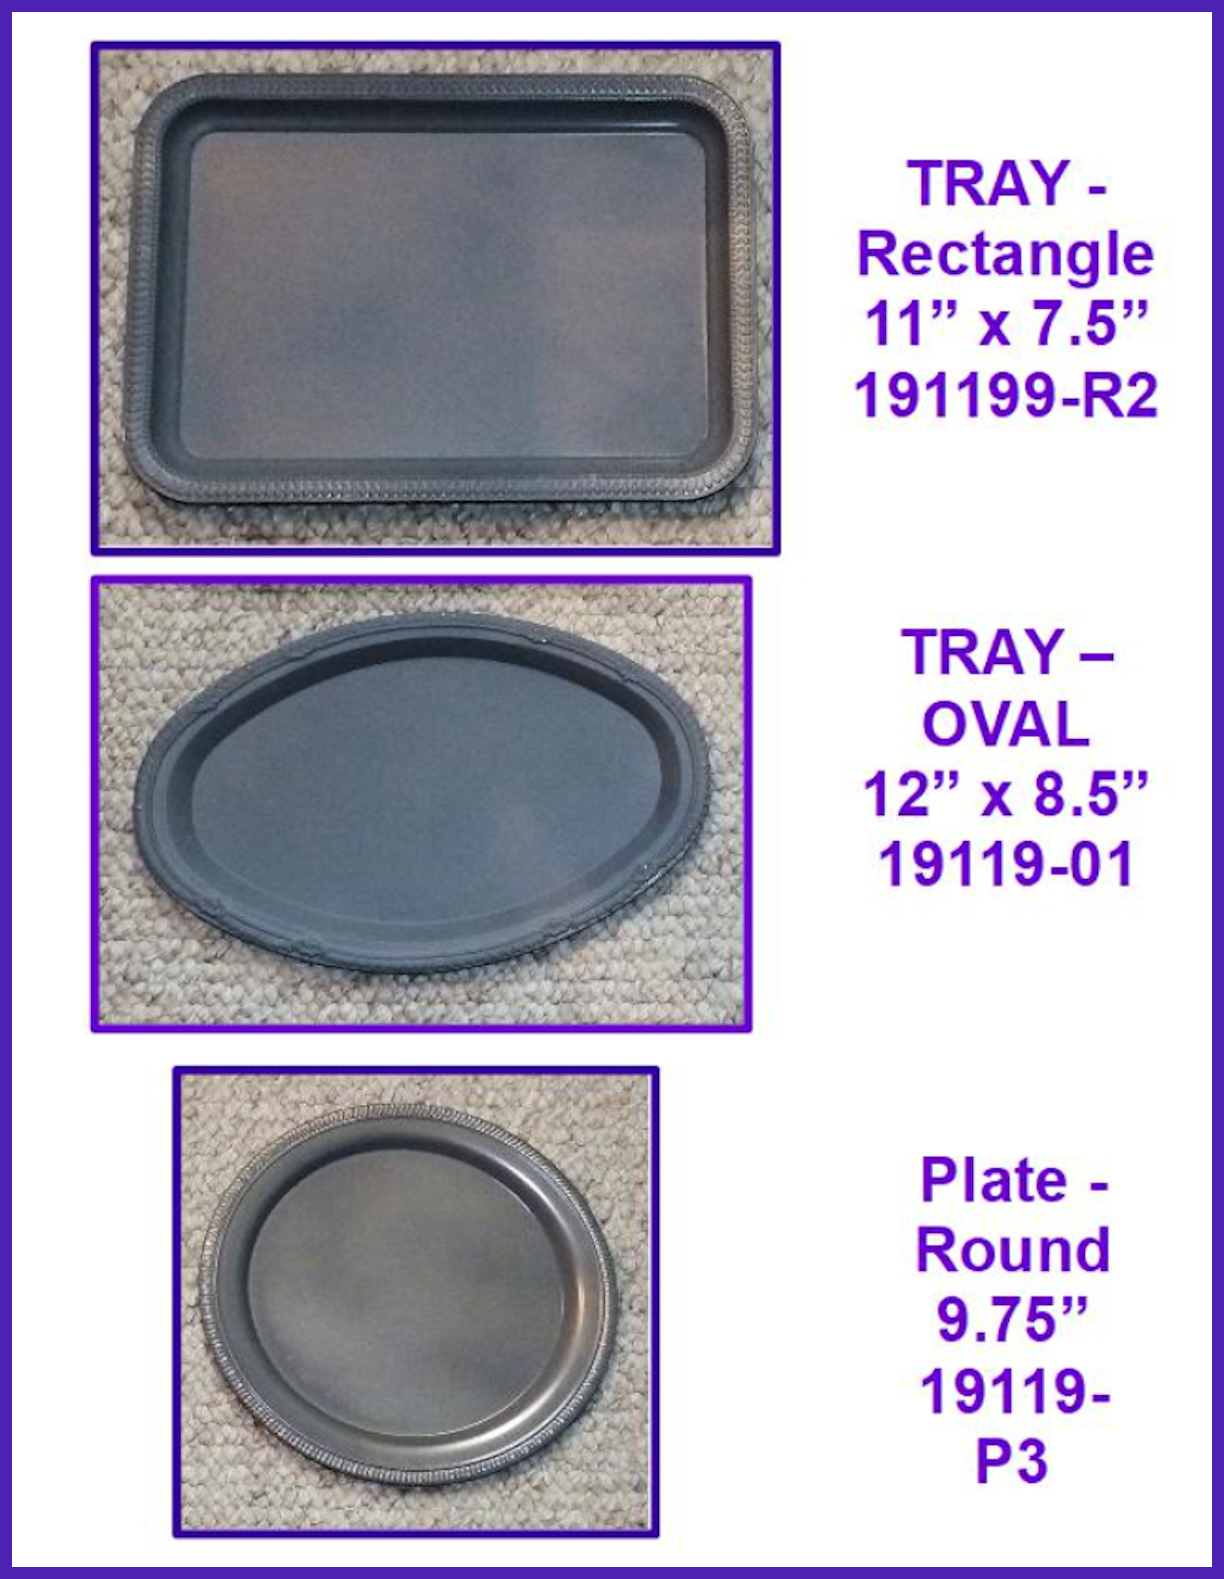 tray-3-tray-vertical-collage.jpg